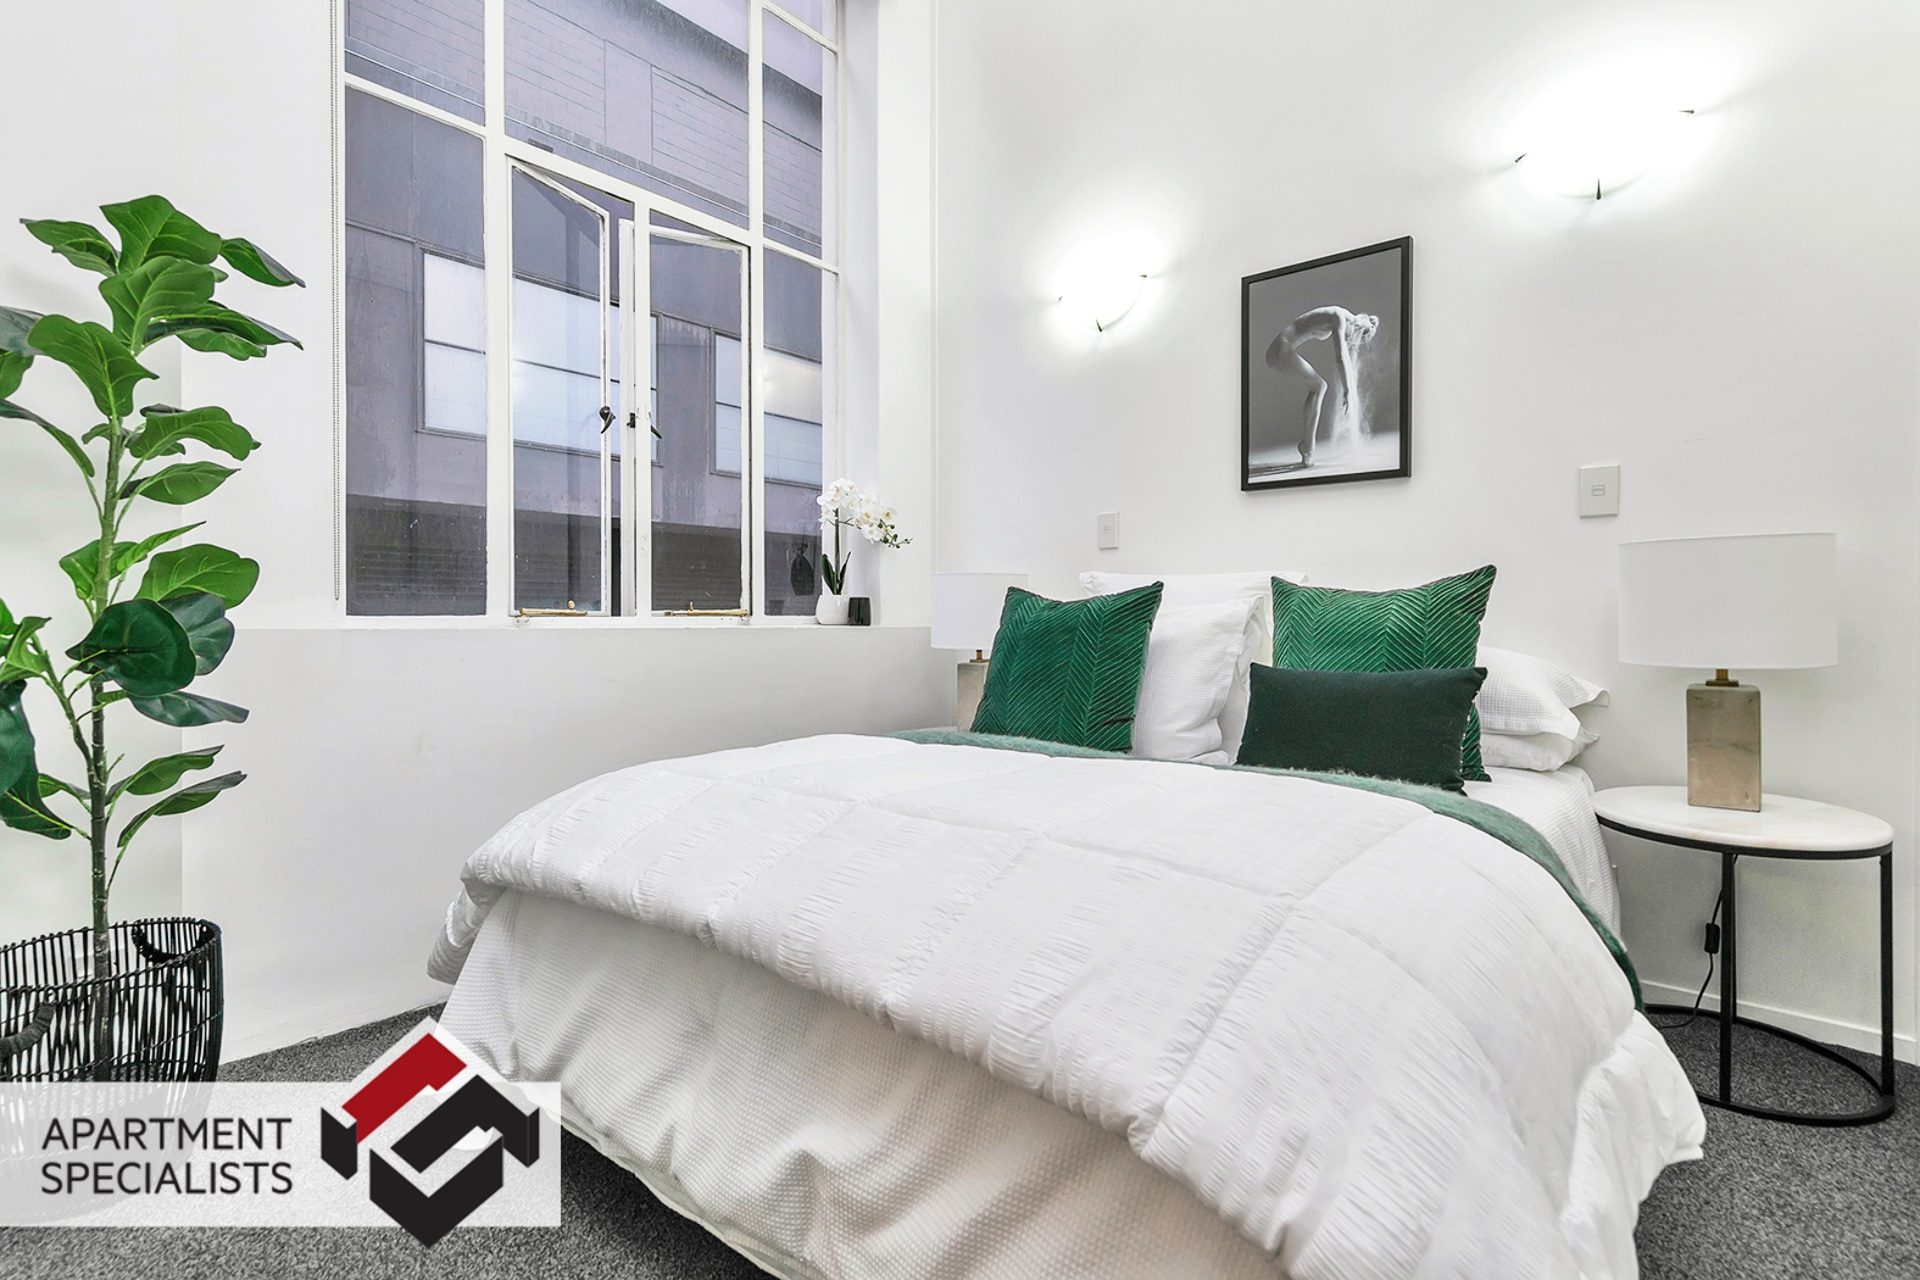 0 | 105 Queen Street, City Centre | Apartment Specialists